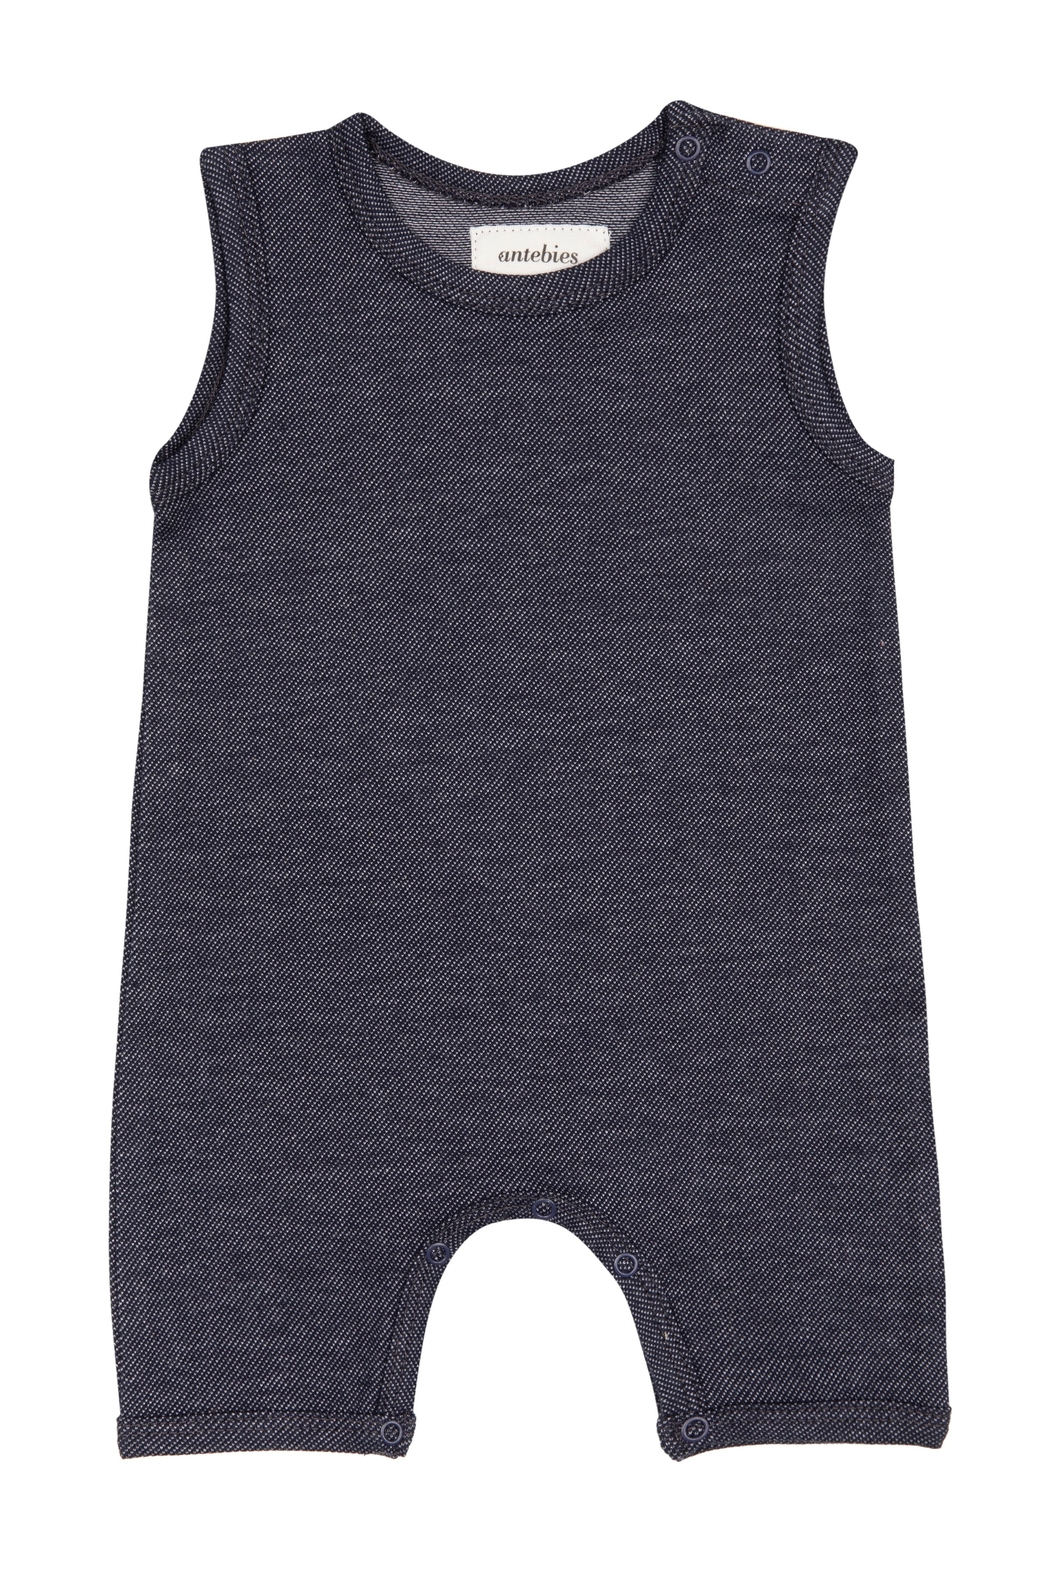 ANTEBIES Baby Organic Cotton Denim Overalls - Front Cropped Image